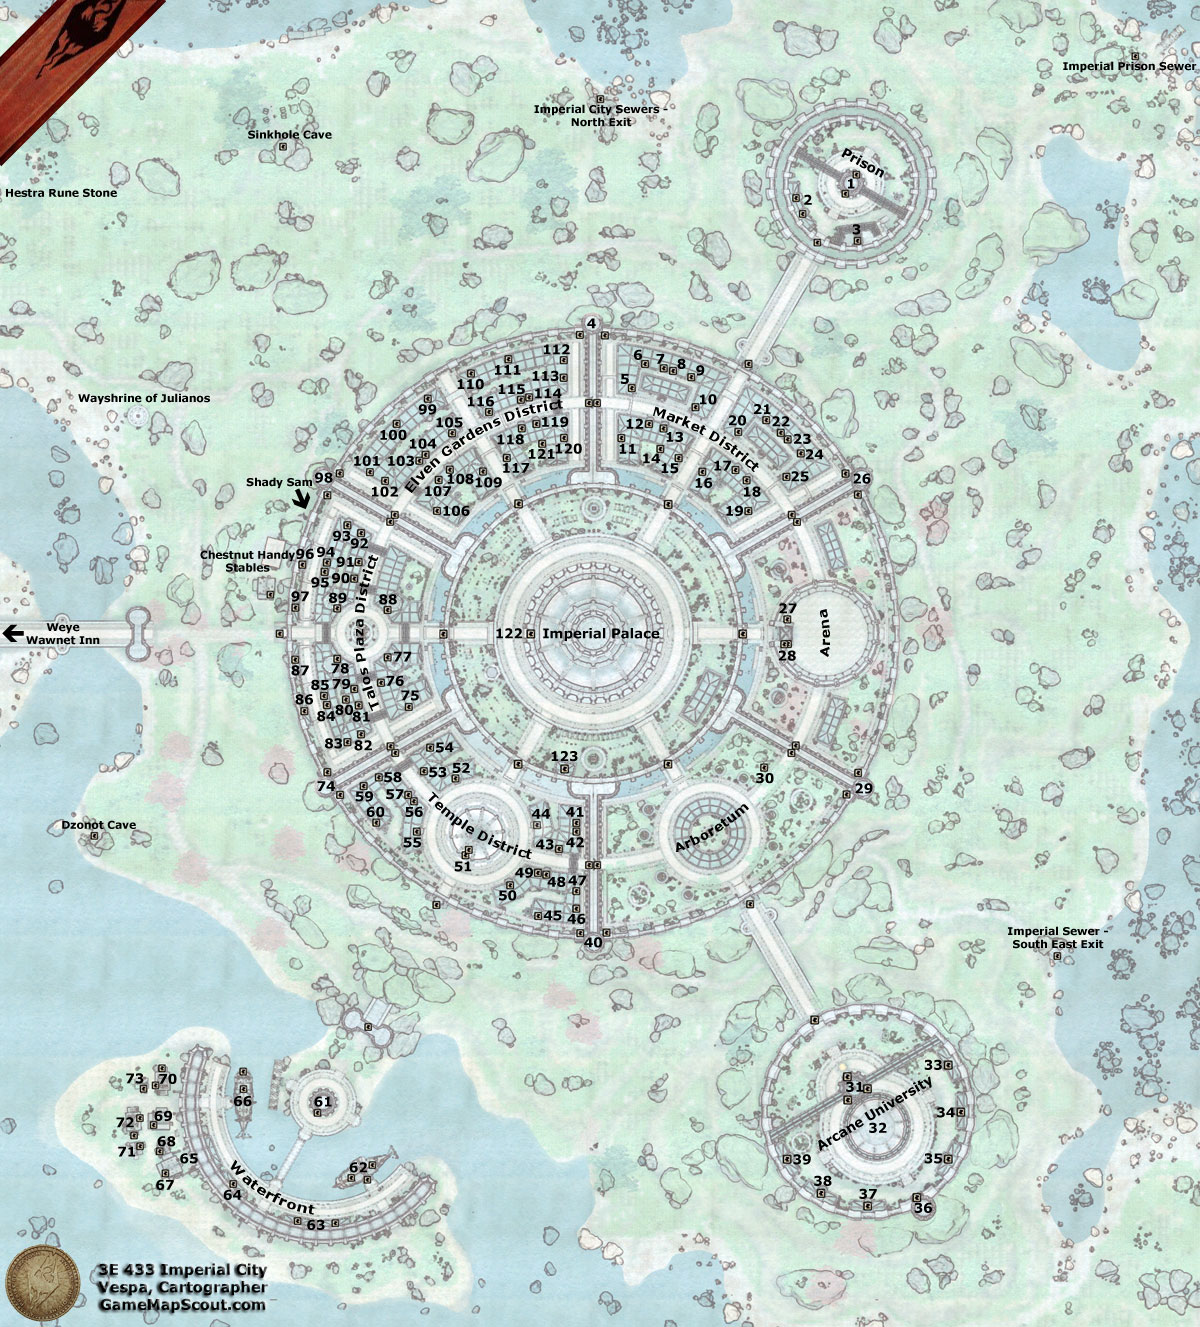 Oblivion Map of Imperial City and its Environs Guide to  : oblivionimperialcity from www.gamemapscout.com size 1200 x 1327 jpeg 456kB